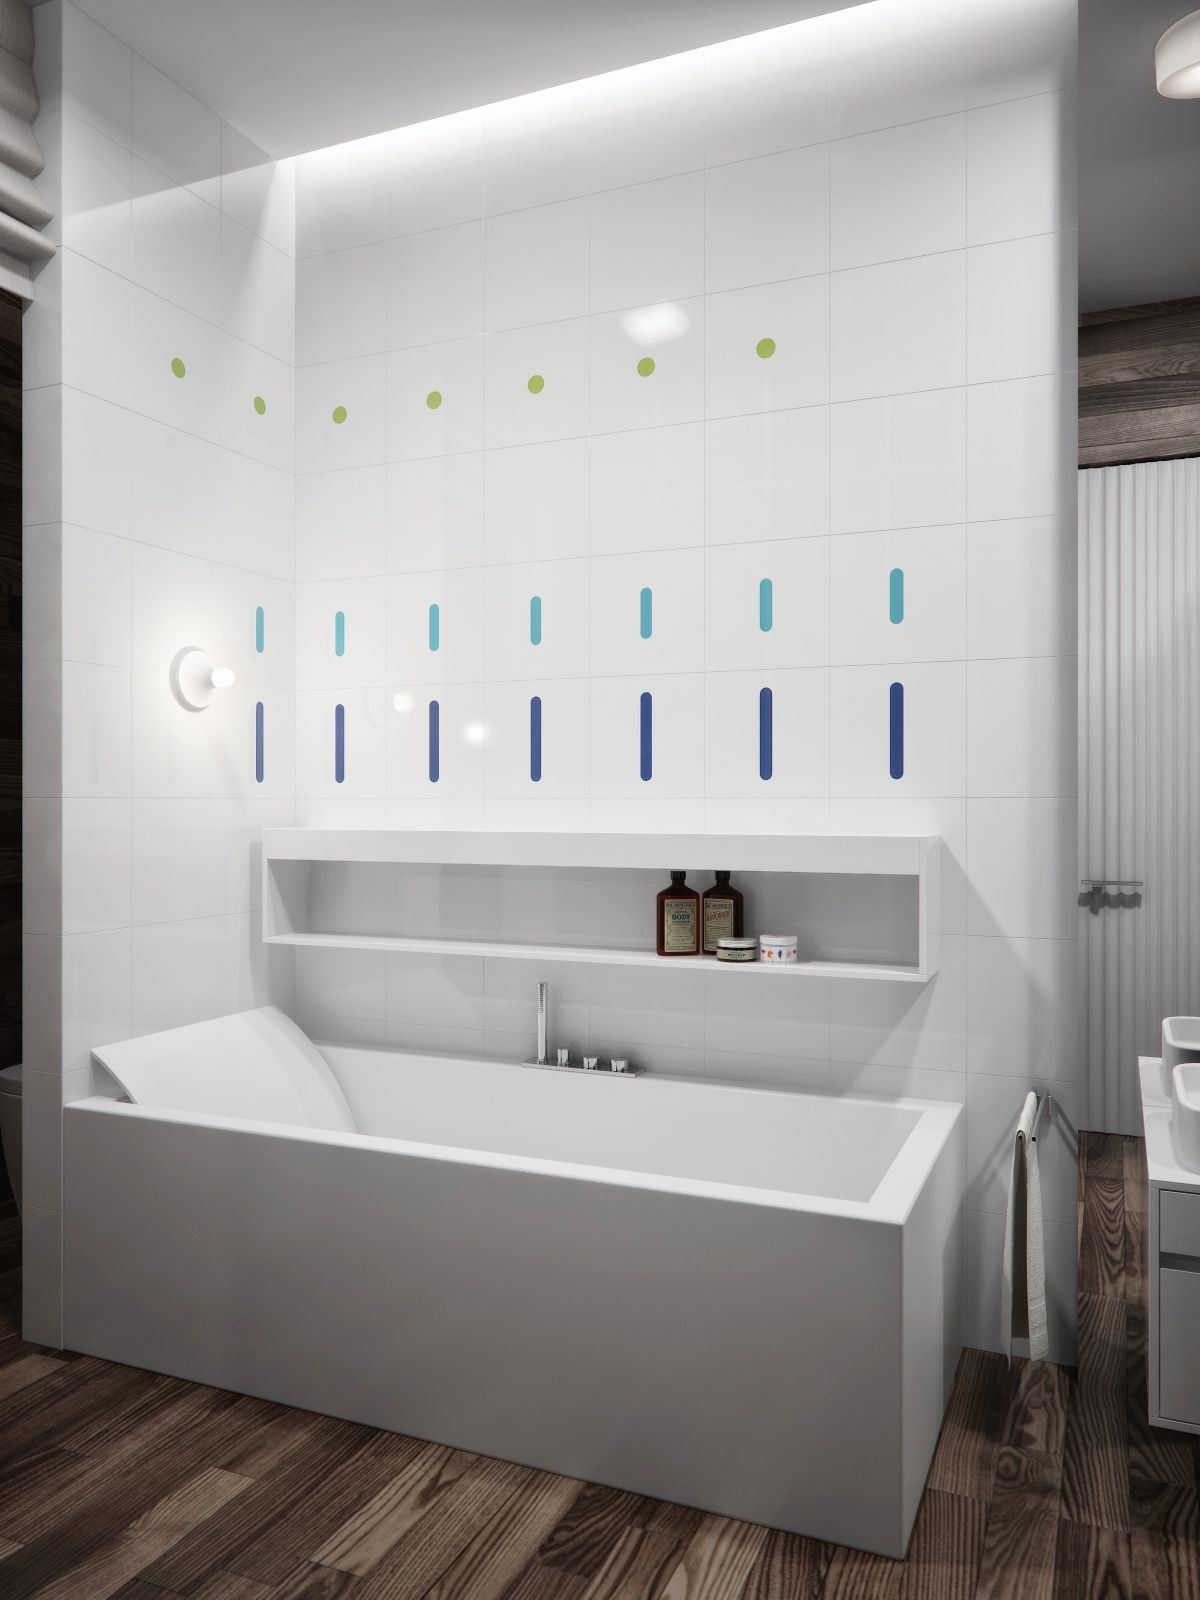 minimalist bathroom designs with wall texture decor which looks so trendy and stylish - Bathroom Design Ideas White Cabinets